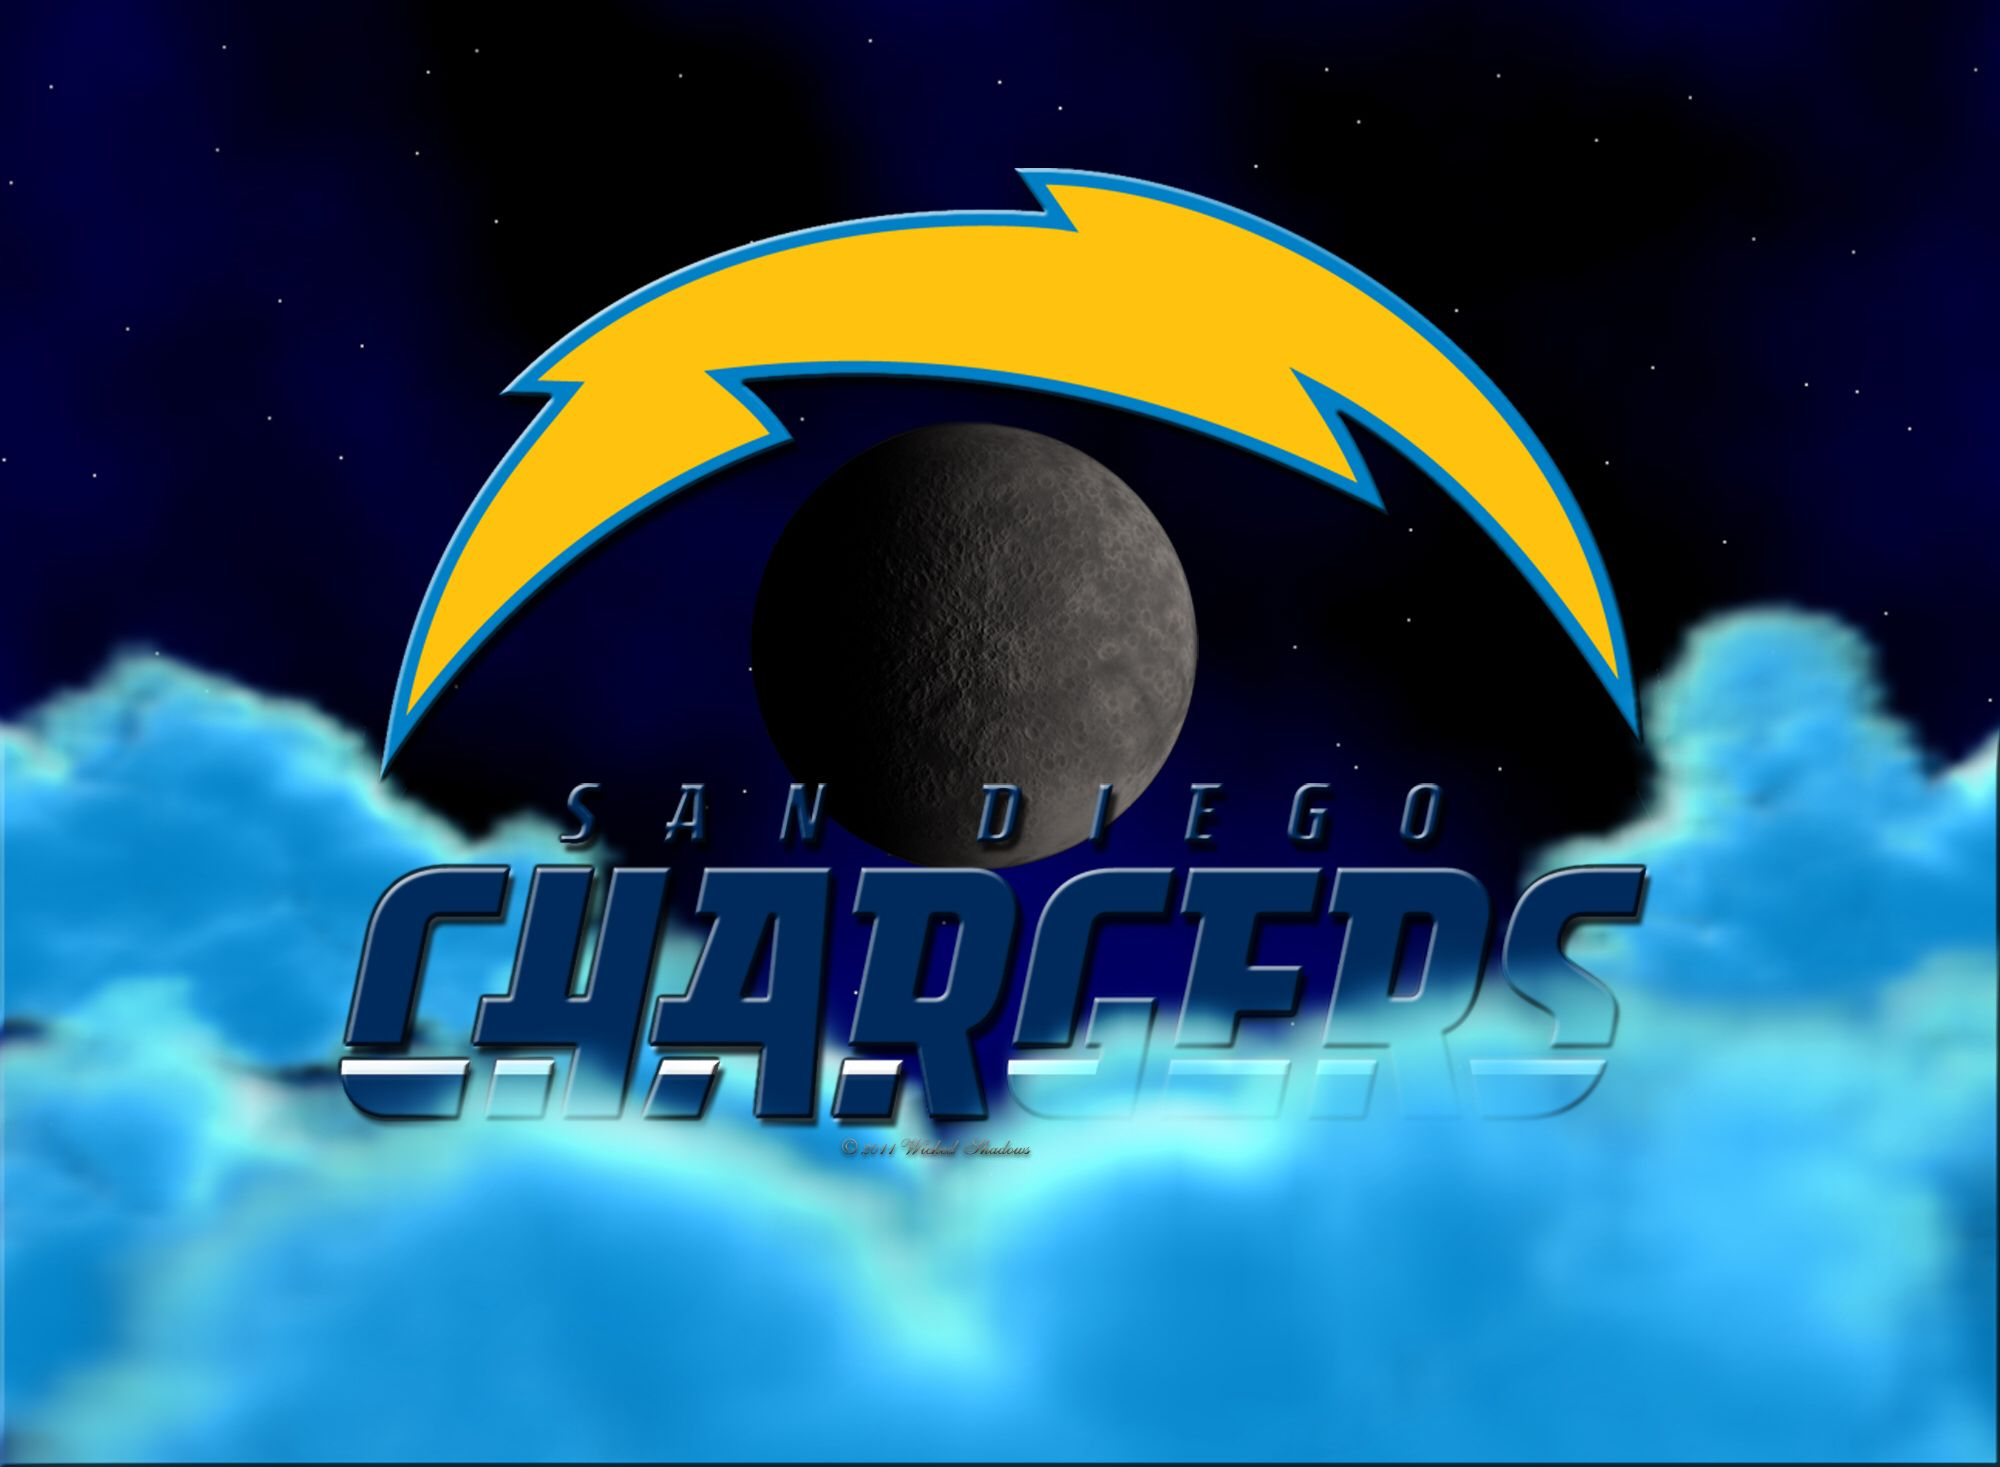 San Diego Chargers My Chargers Bolt Up San Diego Chargers